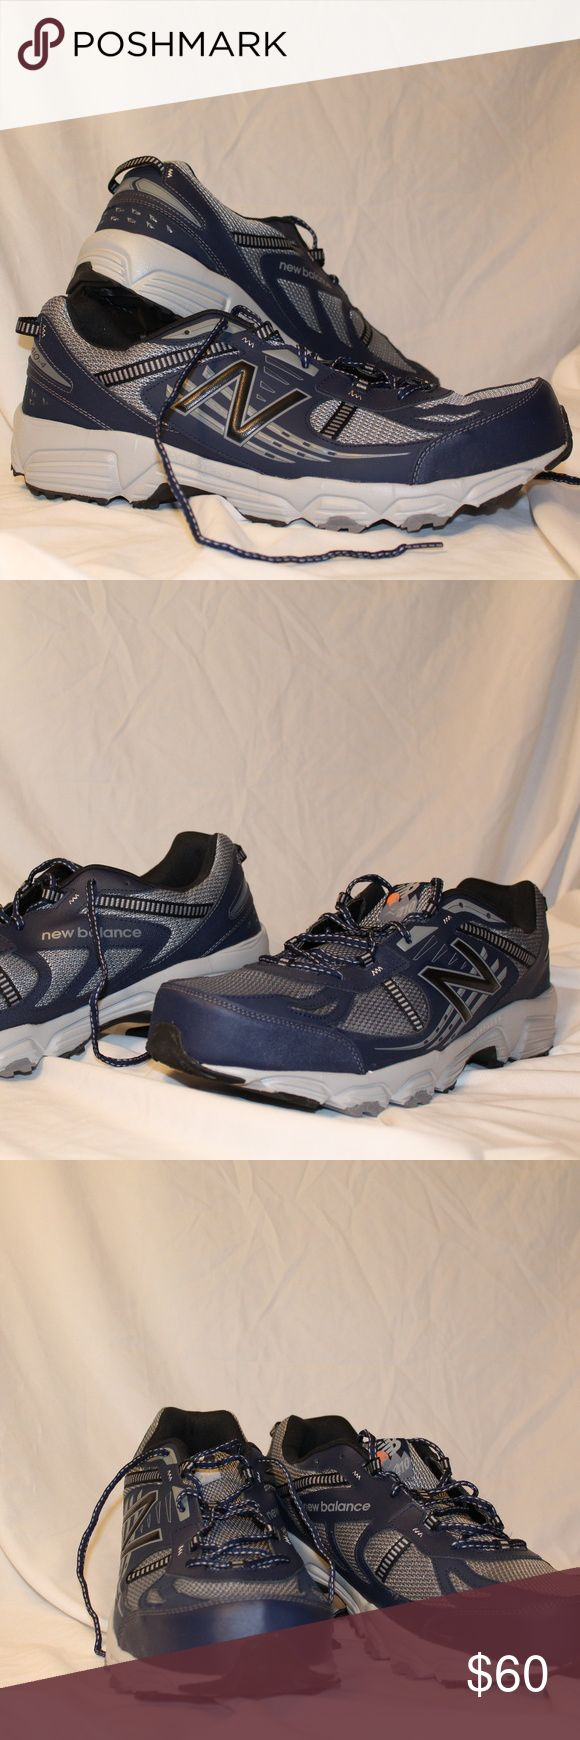 New Balance - Trail Running Shoes, Size 18 4E Synthetic Rubber sole Technical trail runner featuring sturdy stripe overlay at ghillie lacing loops and rear heel pull Padded tongue with logo lace keeper IMEVA foam midsole XLT performance footbed AT Tread all-terrain outsole New Balance Shoes Athletic Shoes